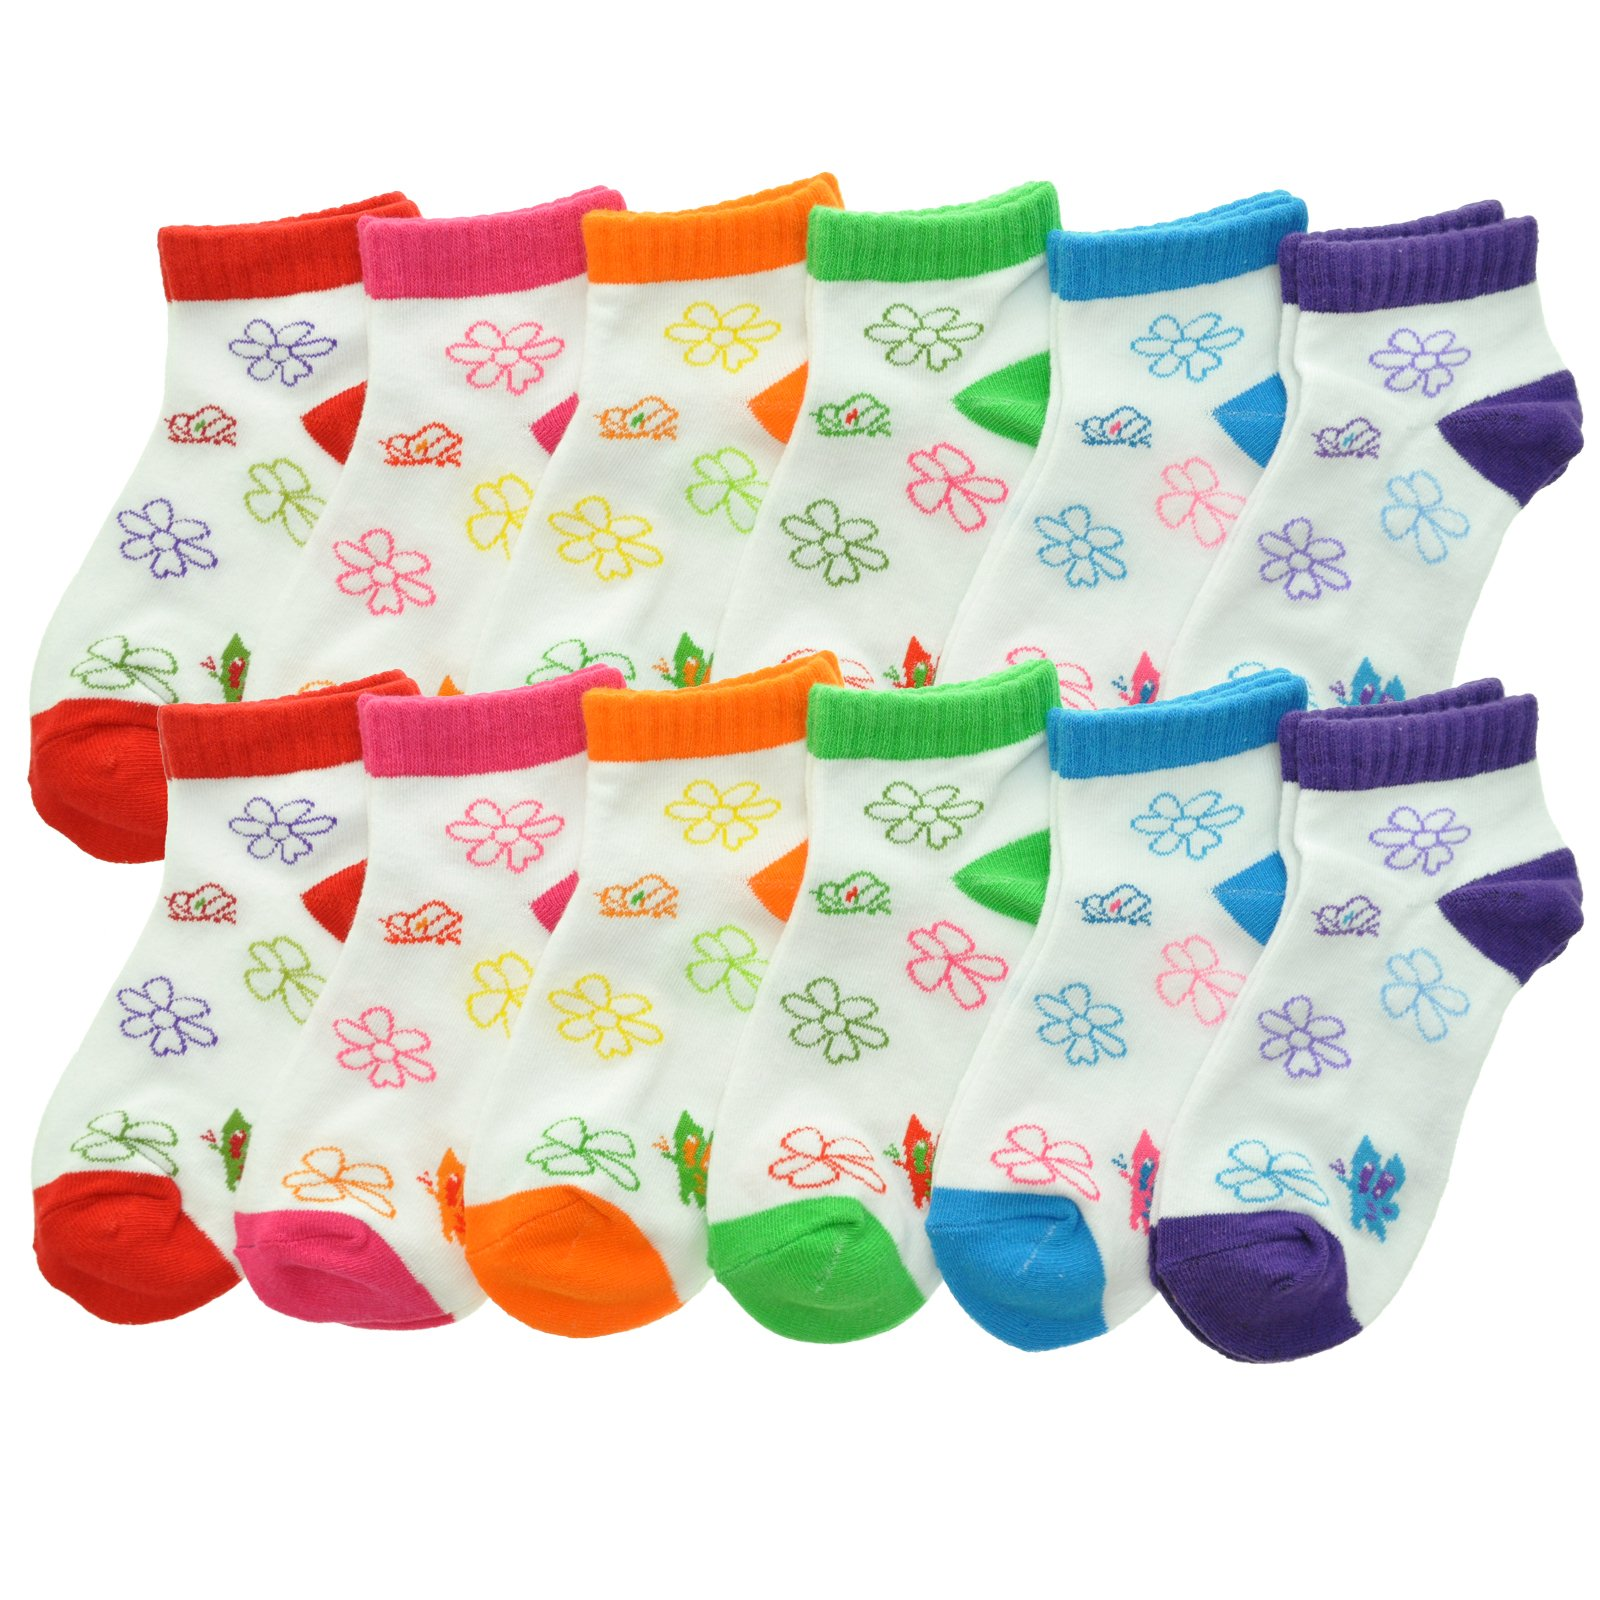 Angelina Cotton Low Cut Trainer Socks (12-Pack), 2305_BUT_6-8